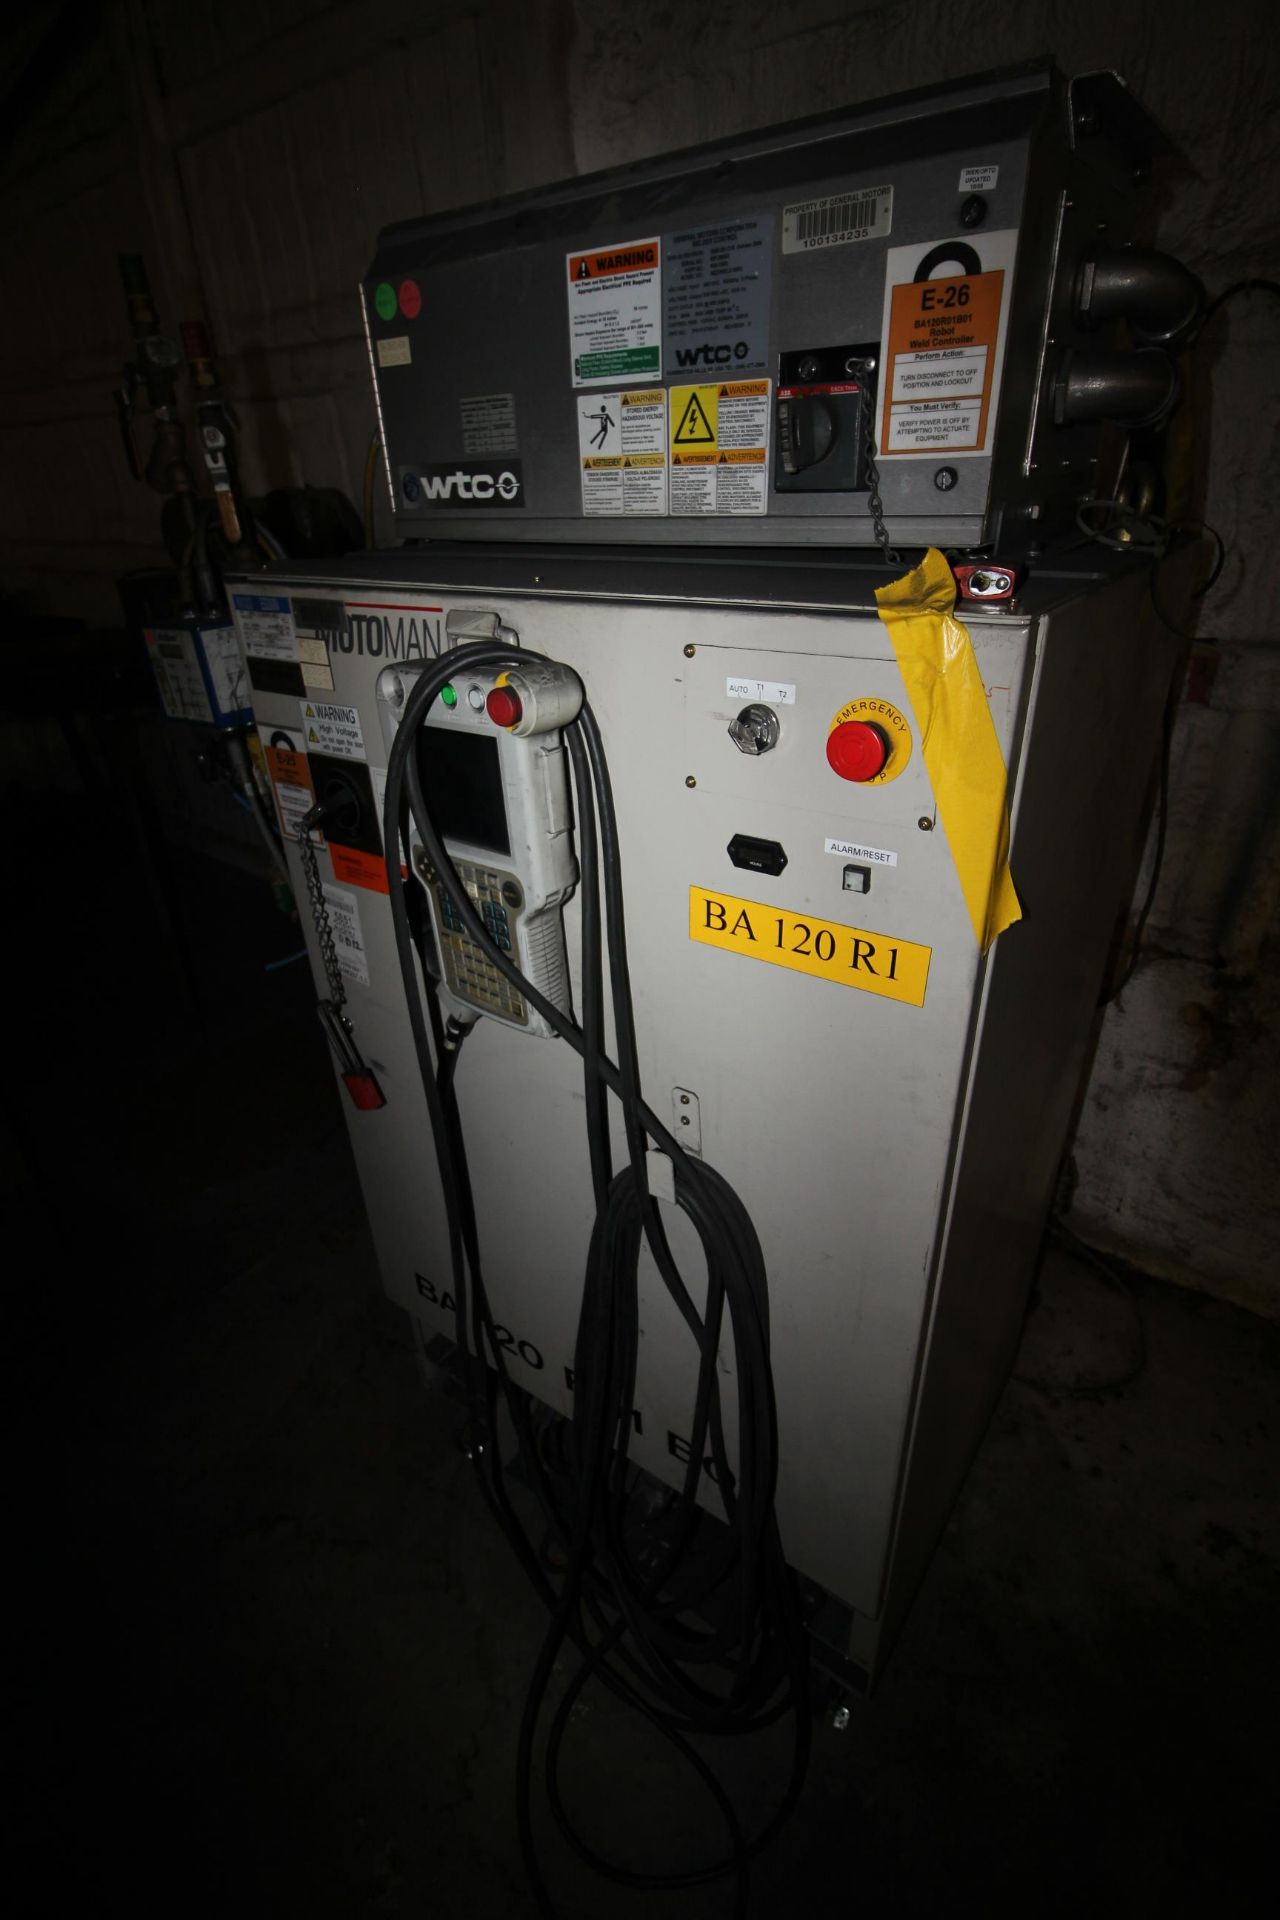 MOTOMAN ROBOT ES200N, NX100 CONTROL, SN S5M255-1-2, YEAR 2006, CABLES AND TEACH PENDANT - Image 4 of 11